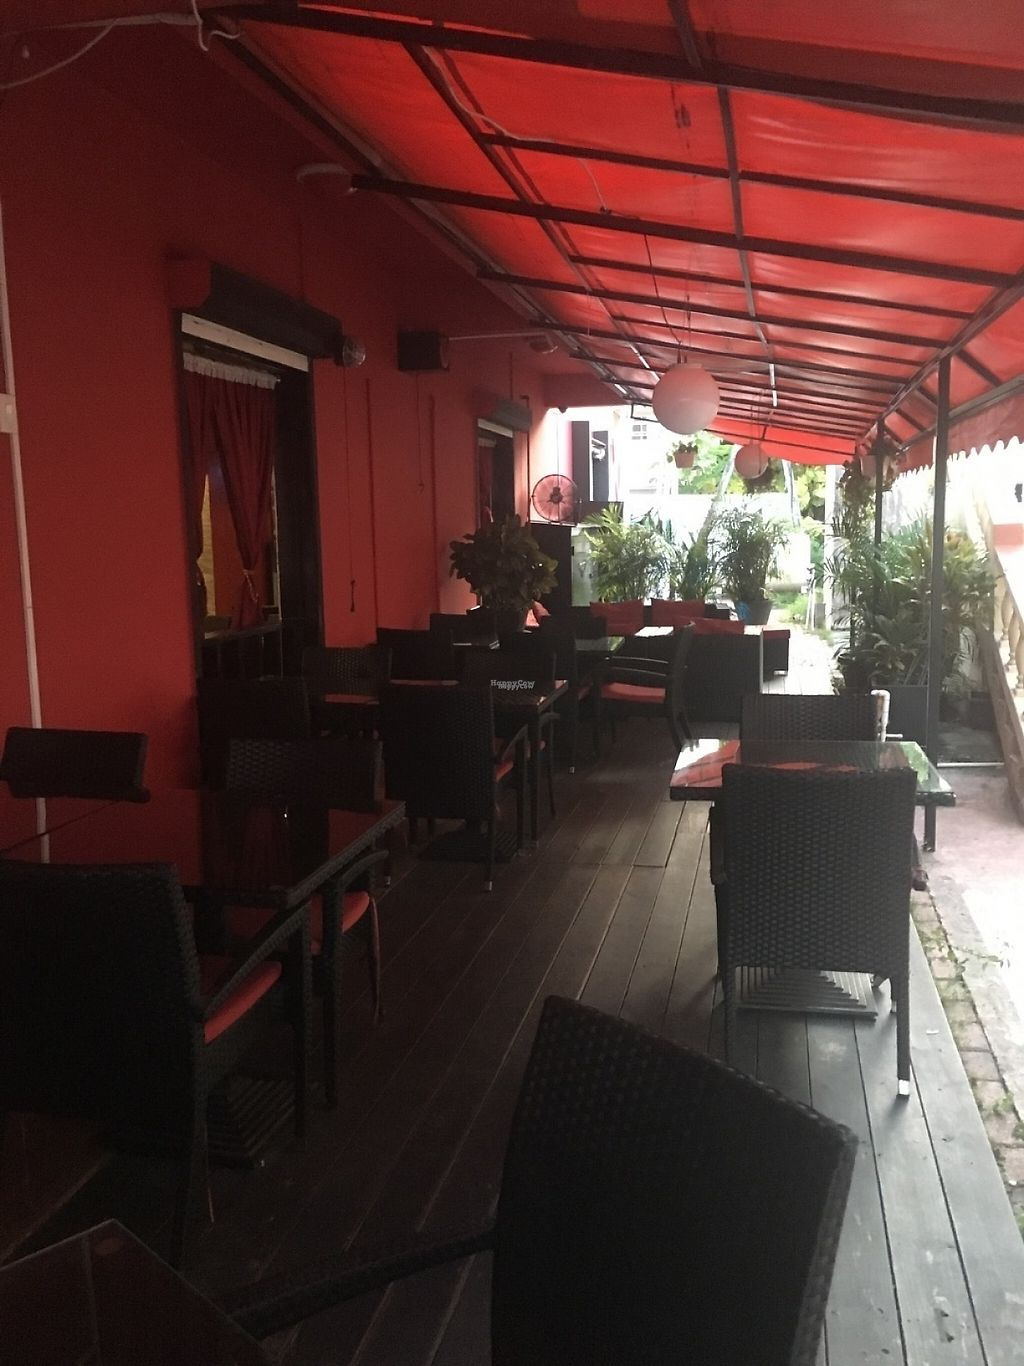 """Photo of Beirut SXM   by <a href=""""/members/profile/veganmom"""">veganmom</a> <br/>Plenty of outdoor seating <br/> November 21, 2016  - <a href='/contact/abuse/image/83023/192852'>Report</a>"""